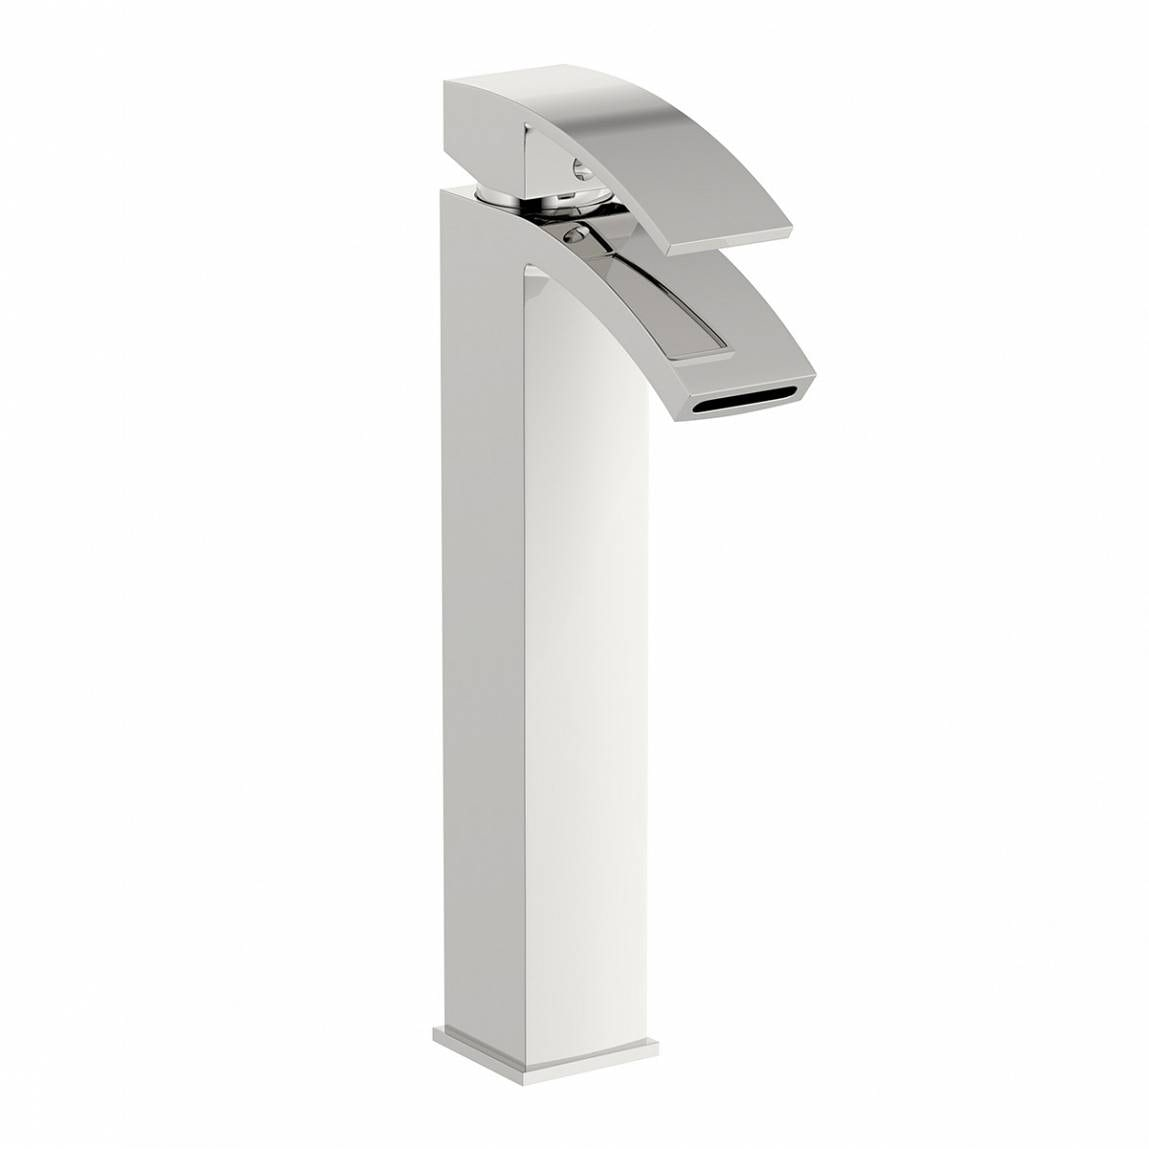 Orchard Wye high rise counter top basin mixer offer pack